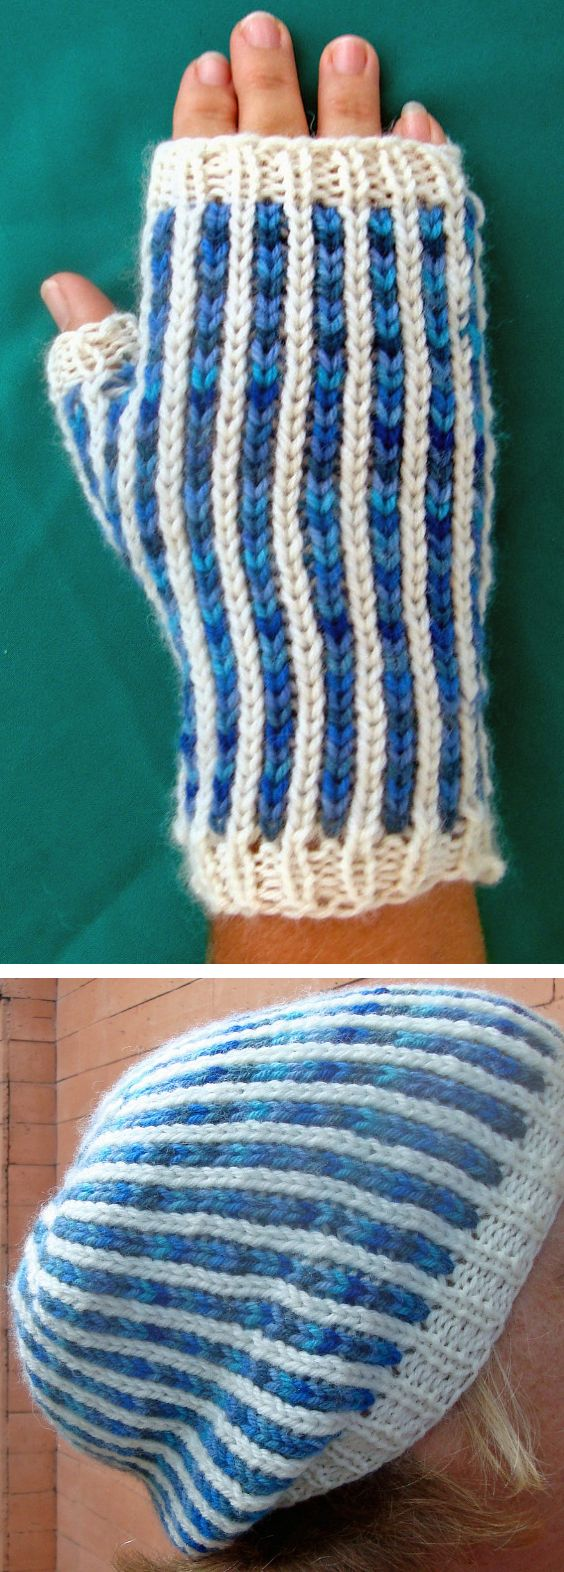 Free Knitting Pattern for Matching Bi-Color Mitts and Slouchy Hat - The vertical stripe colorwork in this set isknit with NO stranding or slipping any stitches. Mitts pattern has an option for full mittens. Hat can be knit flat or in the round. Great with multi-color yarn. Designed by Terry Morris